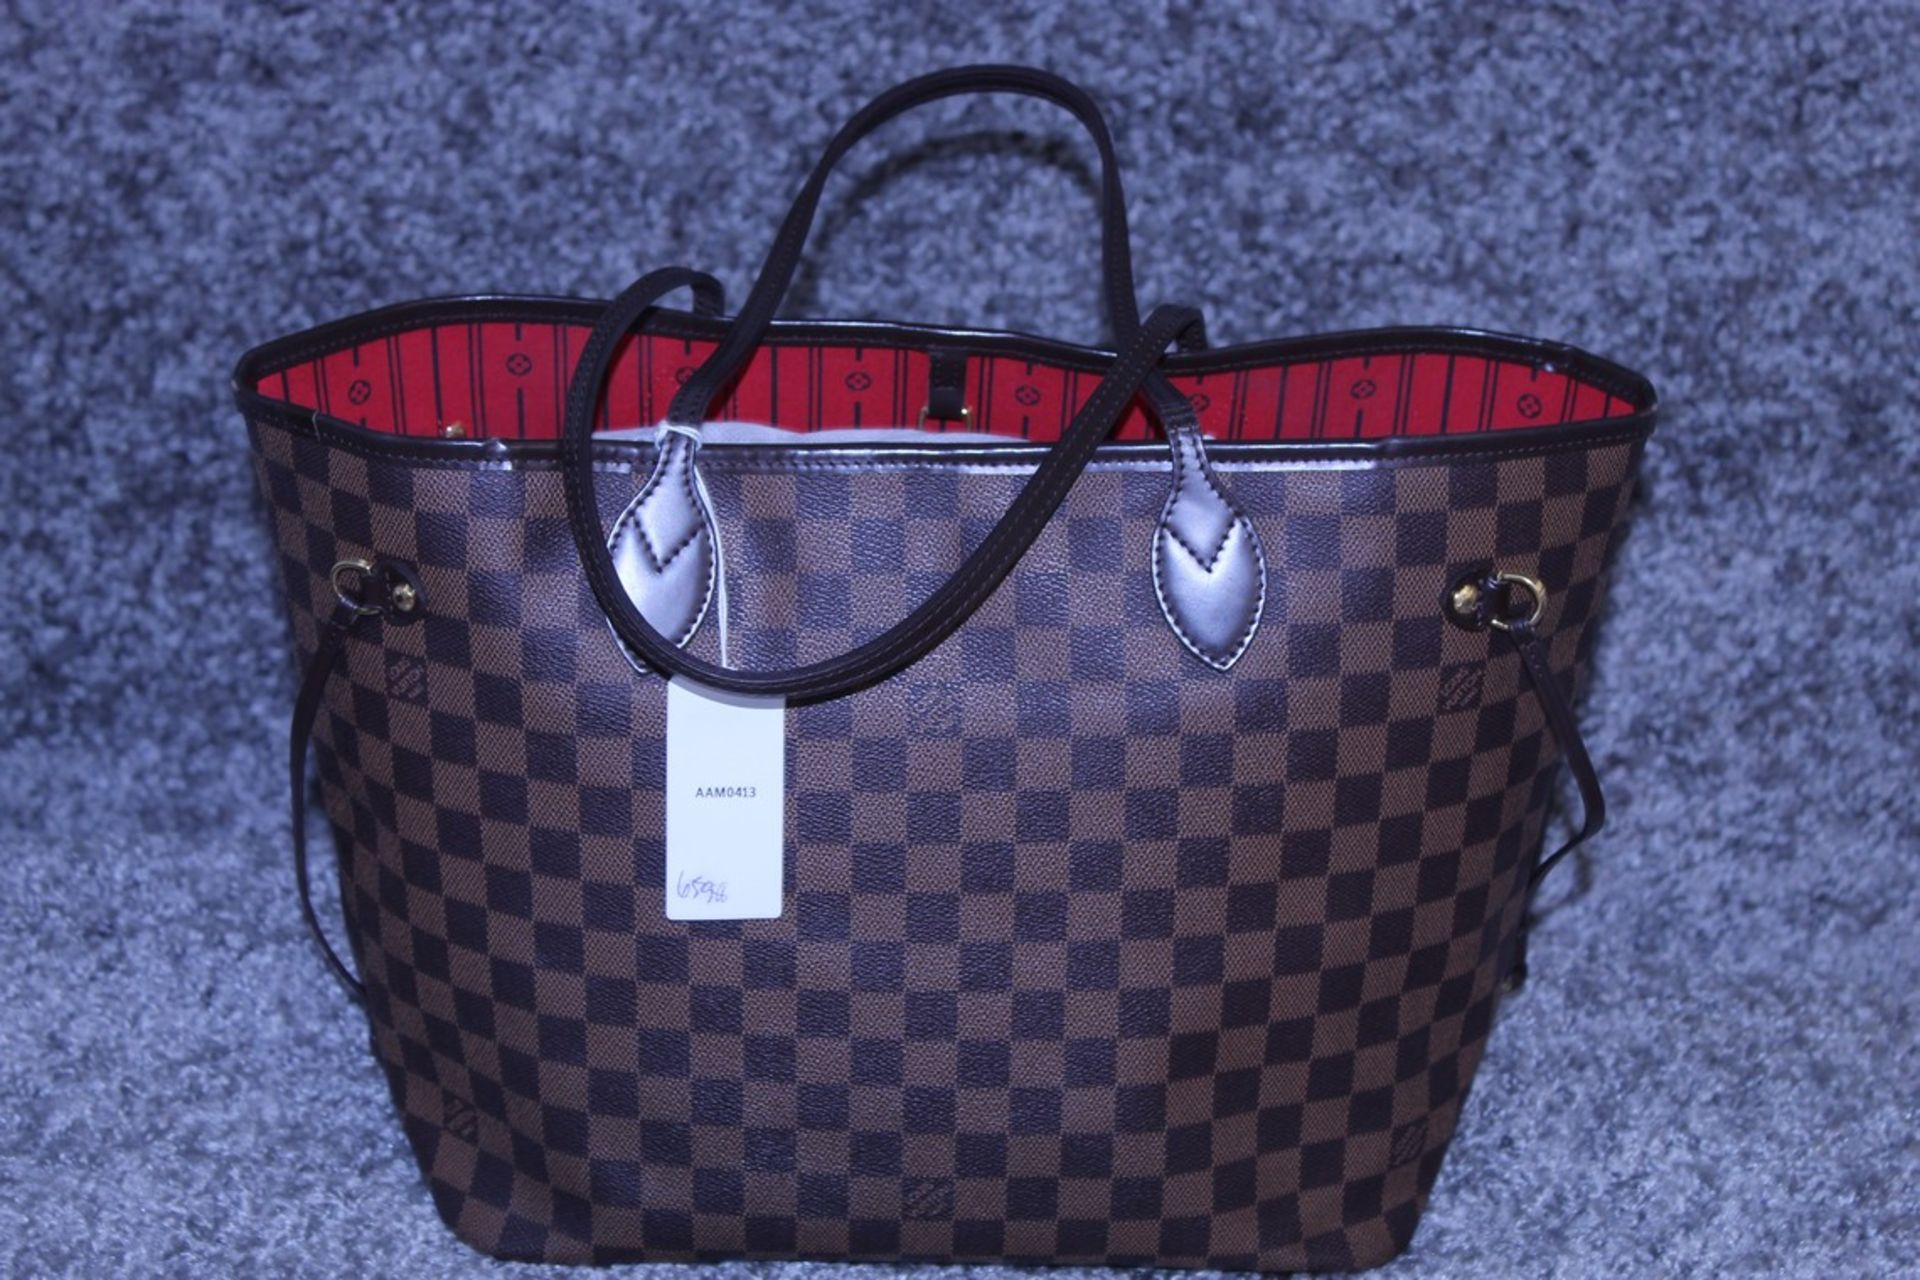 RRP £1300 Louis Vuitton Neverfull Shoulder Bag In Brown Coated Canvas With Vachetta Handles ( - Image 2 of 3